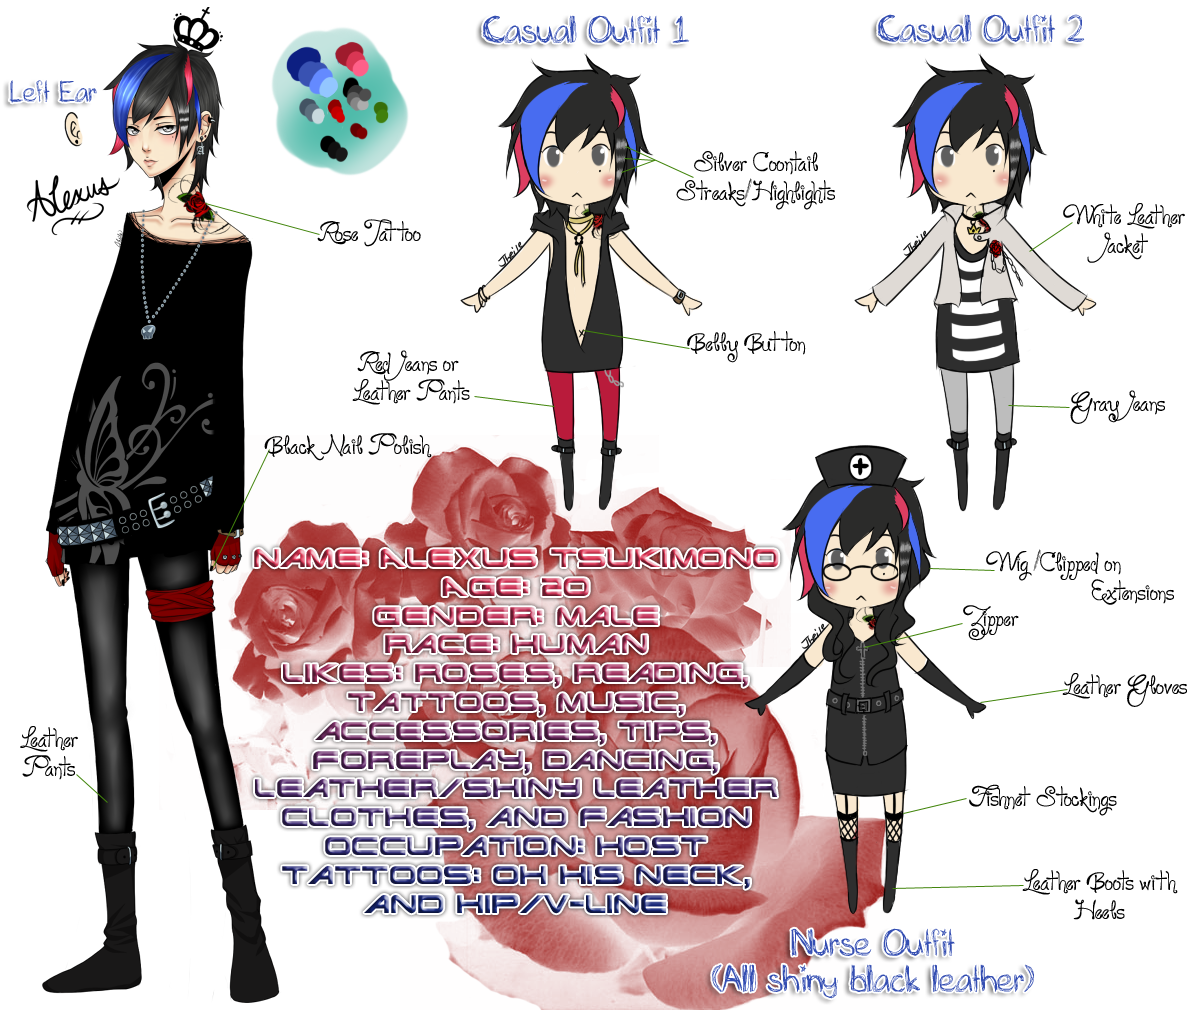 OC Alexus Character Sheet By OhSquishy On DeviantArt